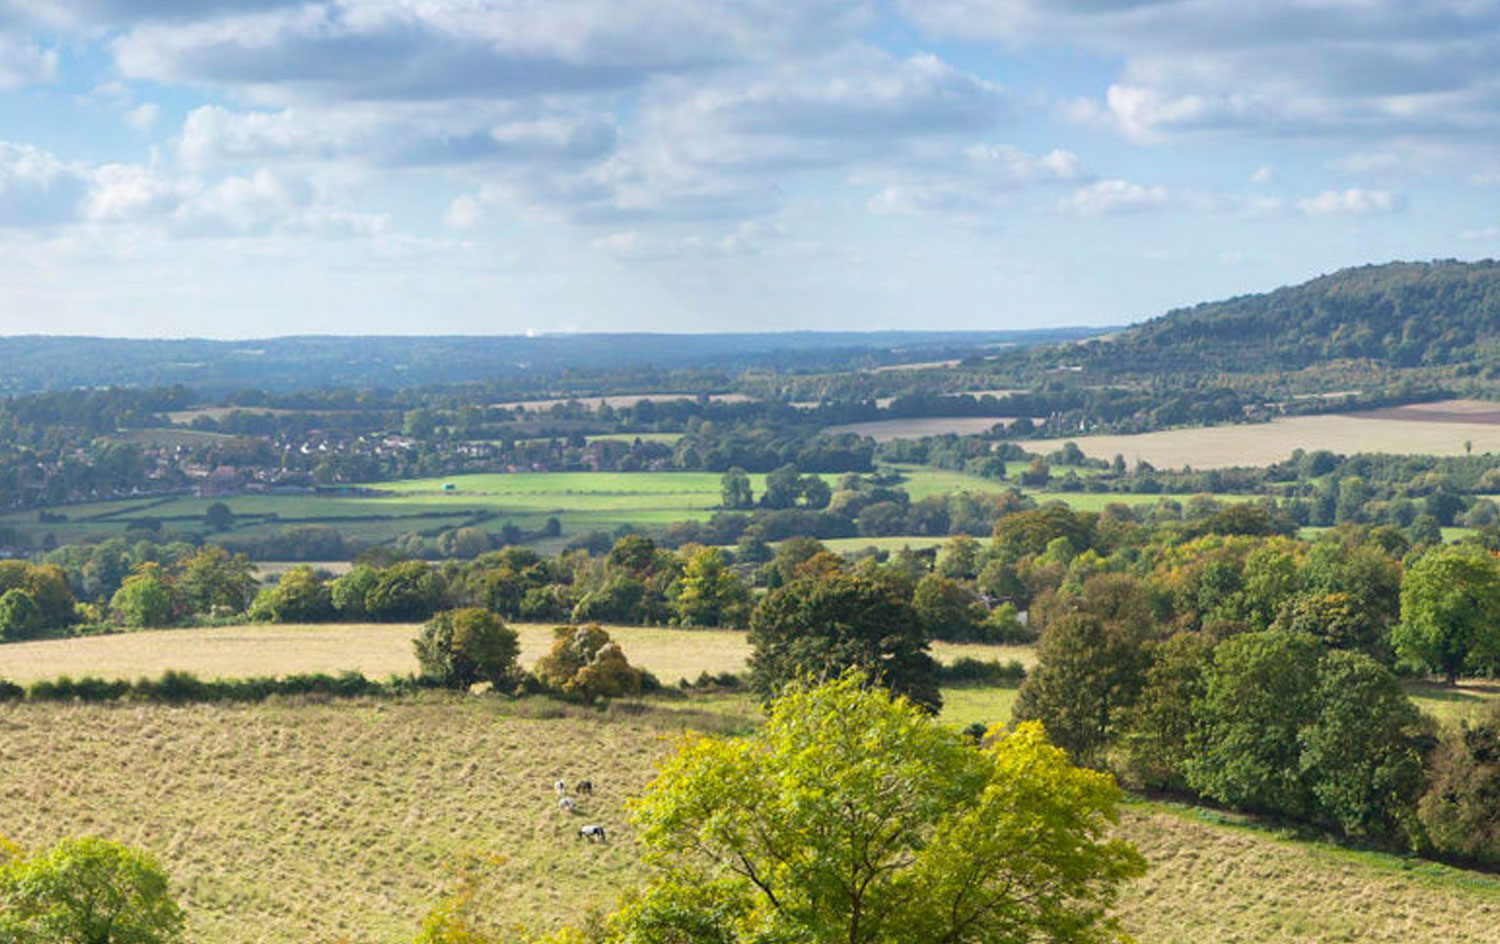 A view of the Darent Valley